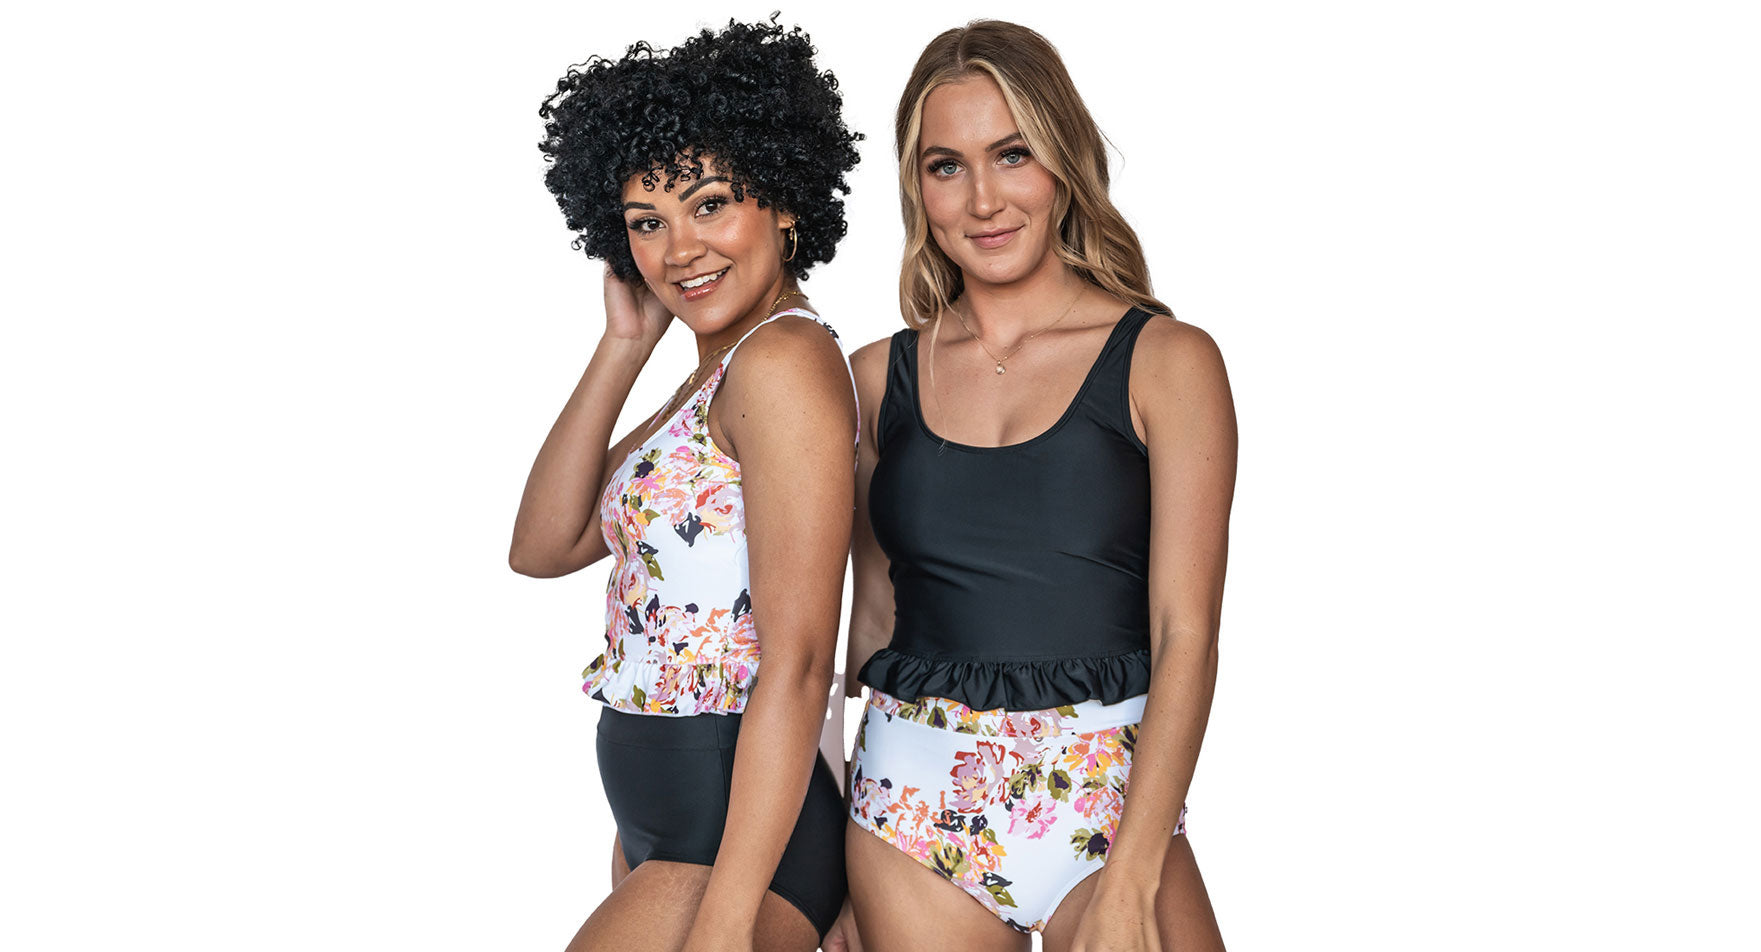 Newest 2021 Swim Collection - Newport Floral, Caramel Stripes & Solid Black